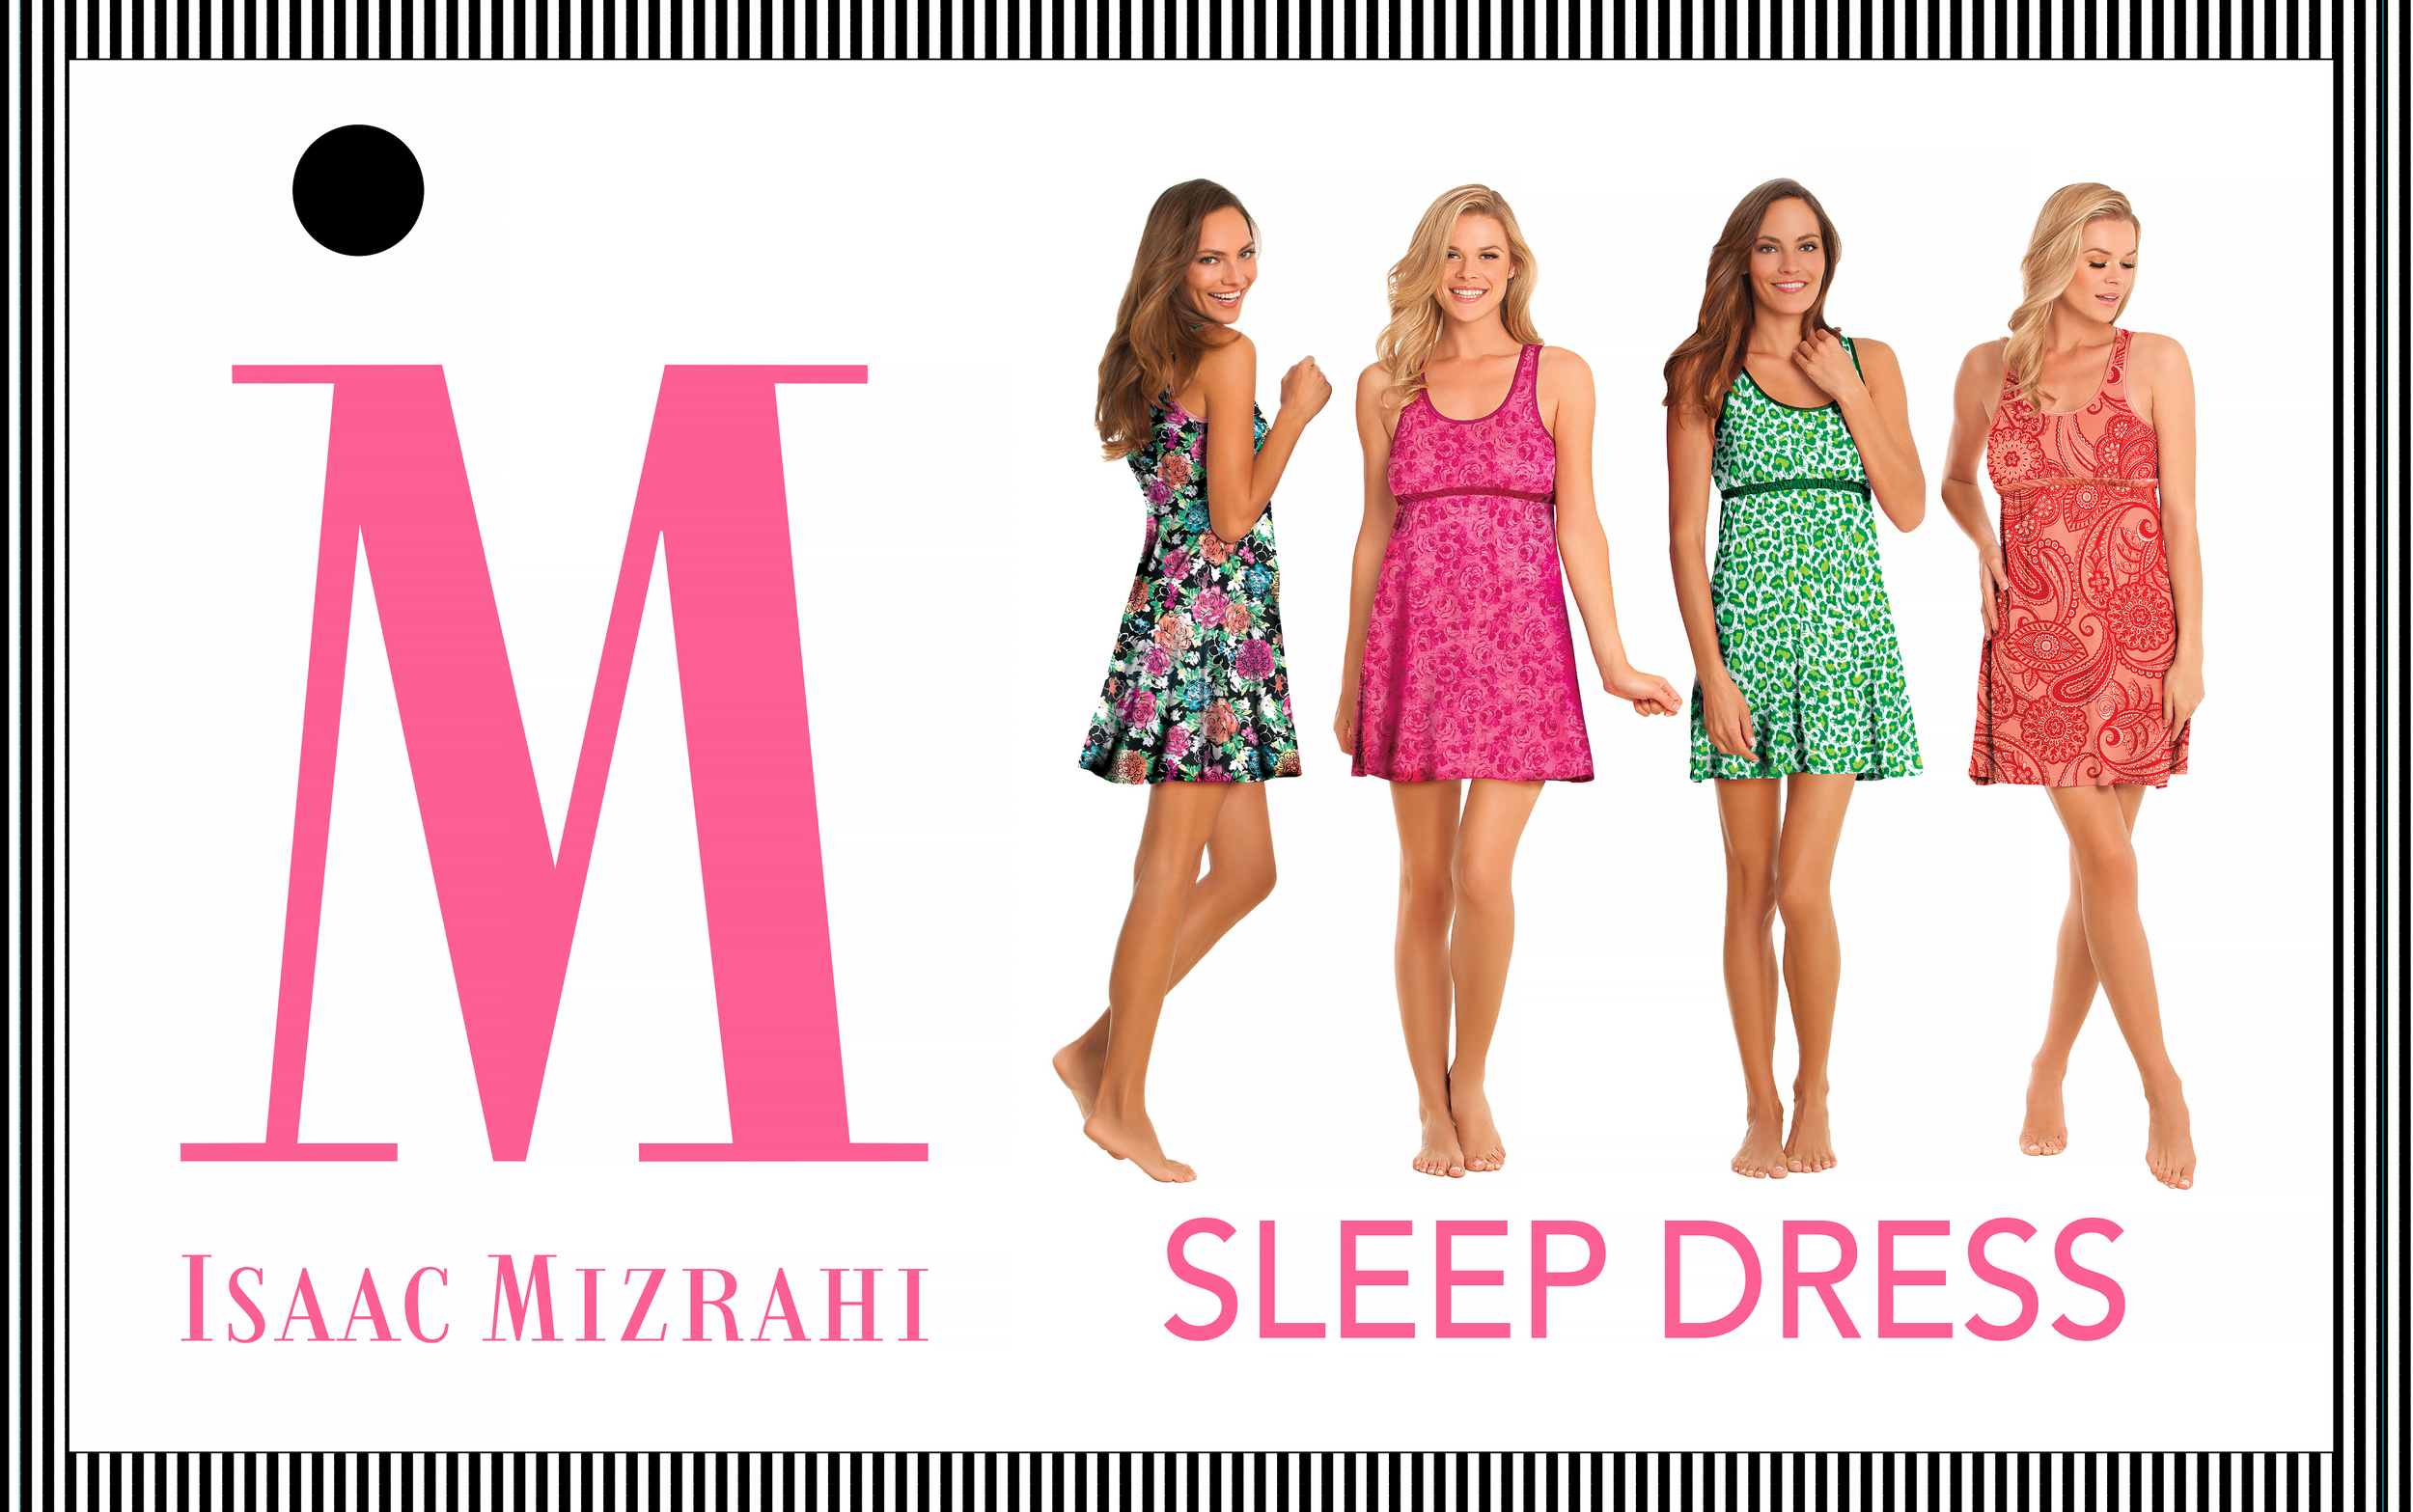 Isaac Mizrahi Sleep Dress